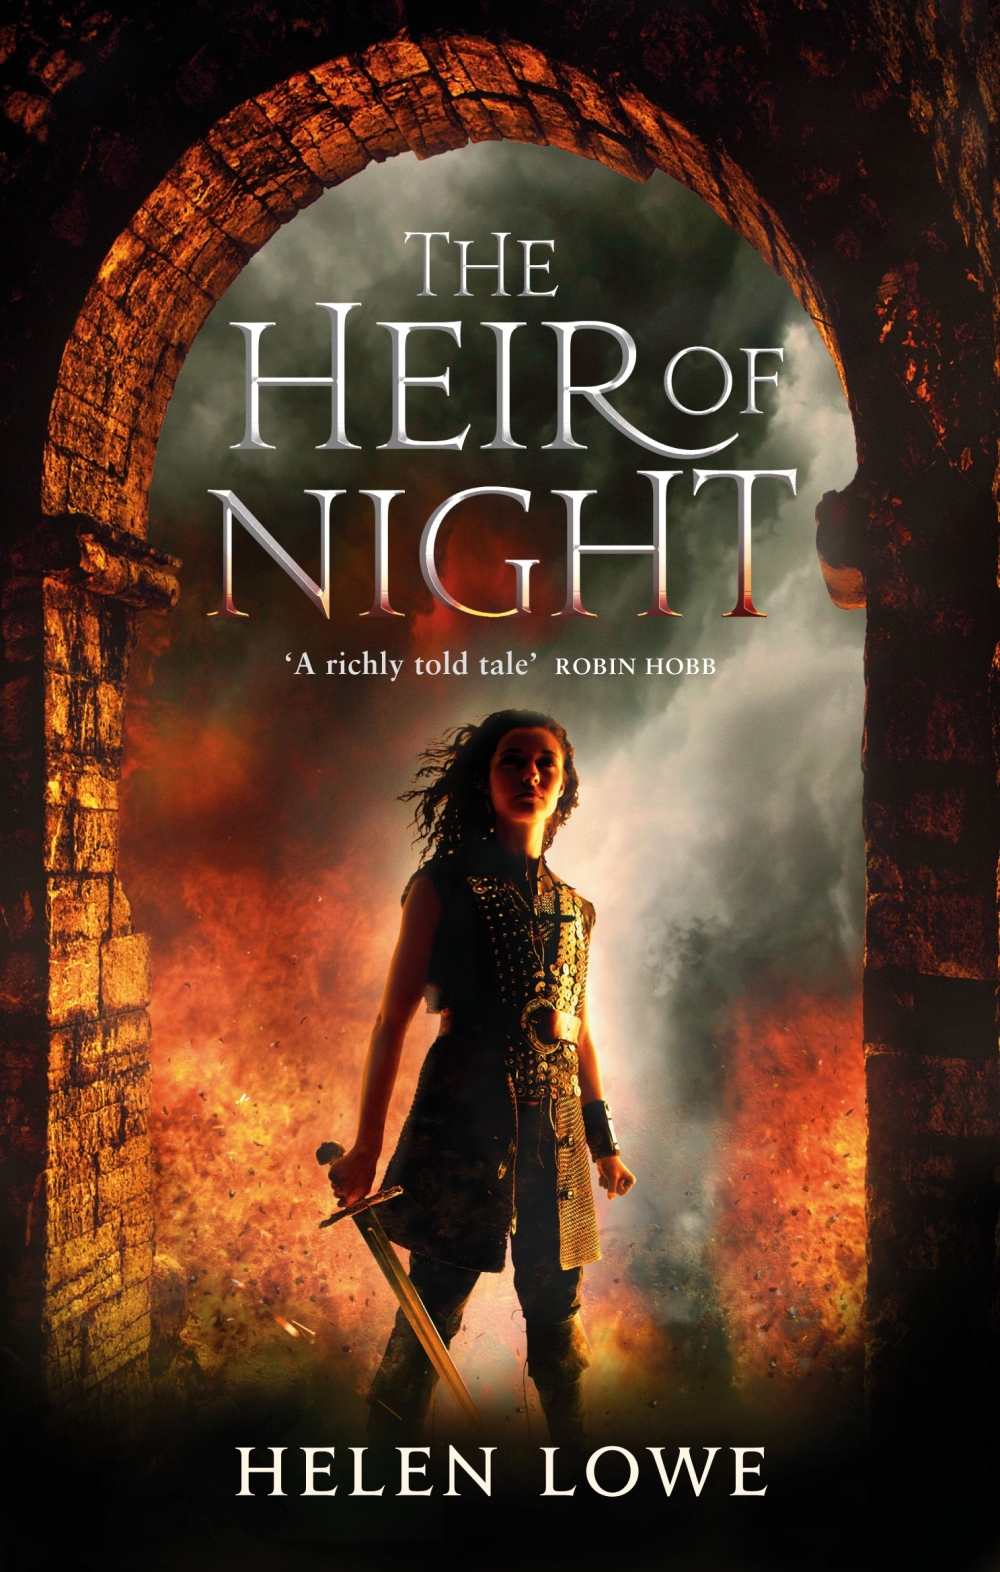 the cover for the heir of night - a girl stands in a castle doorway, surrounded by fire and smoke